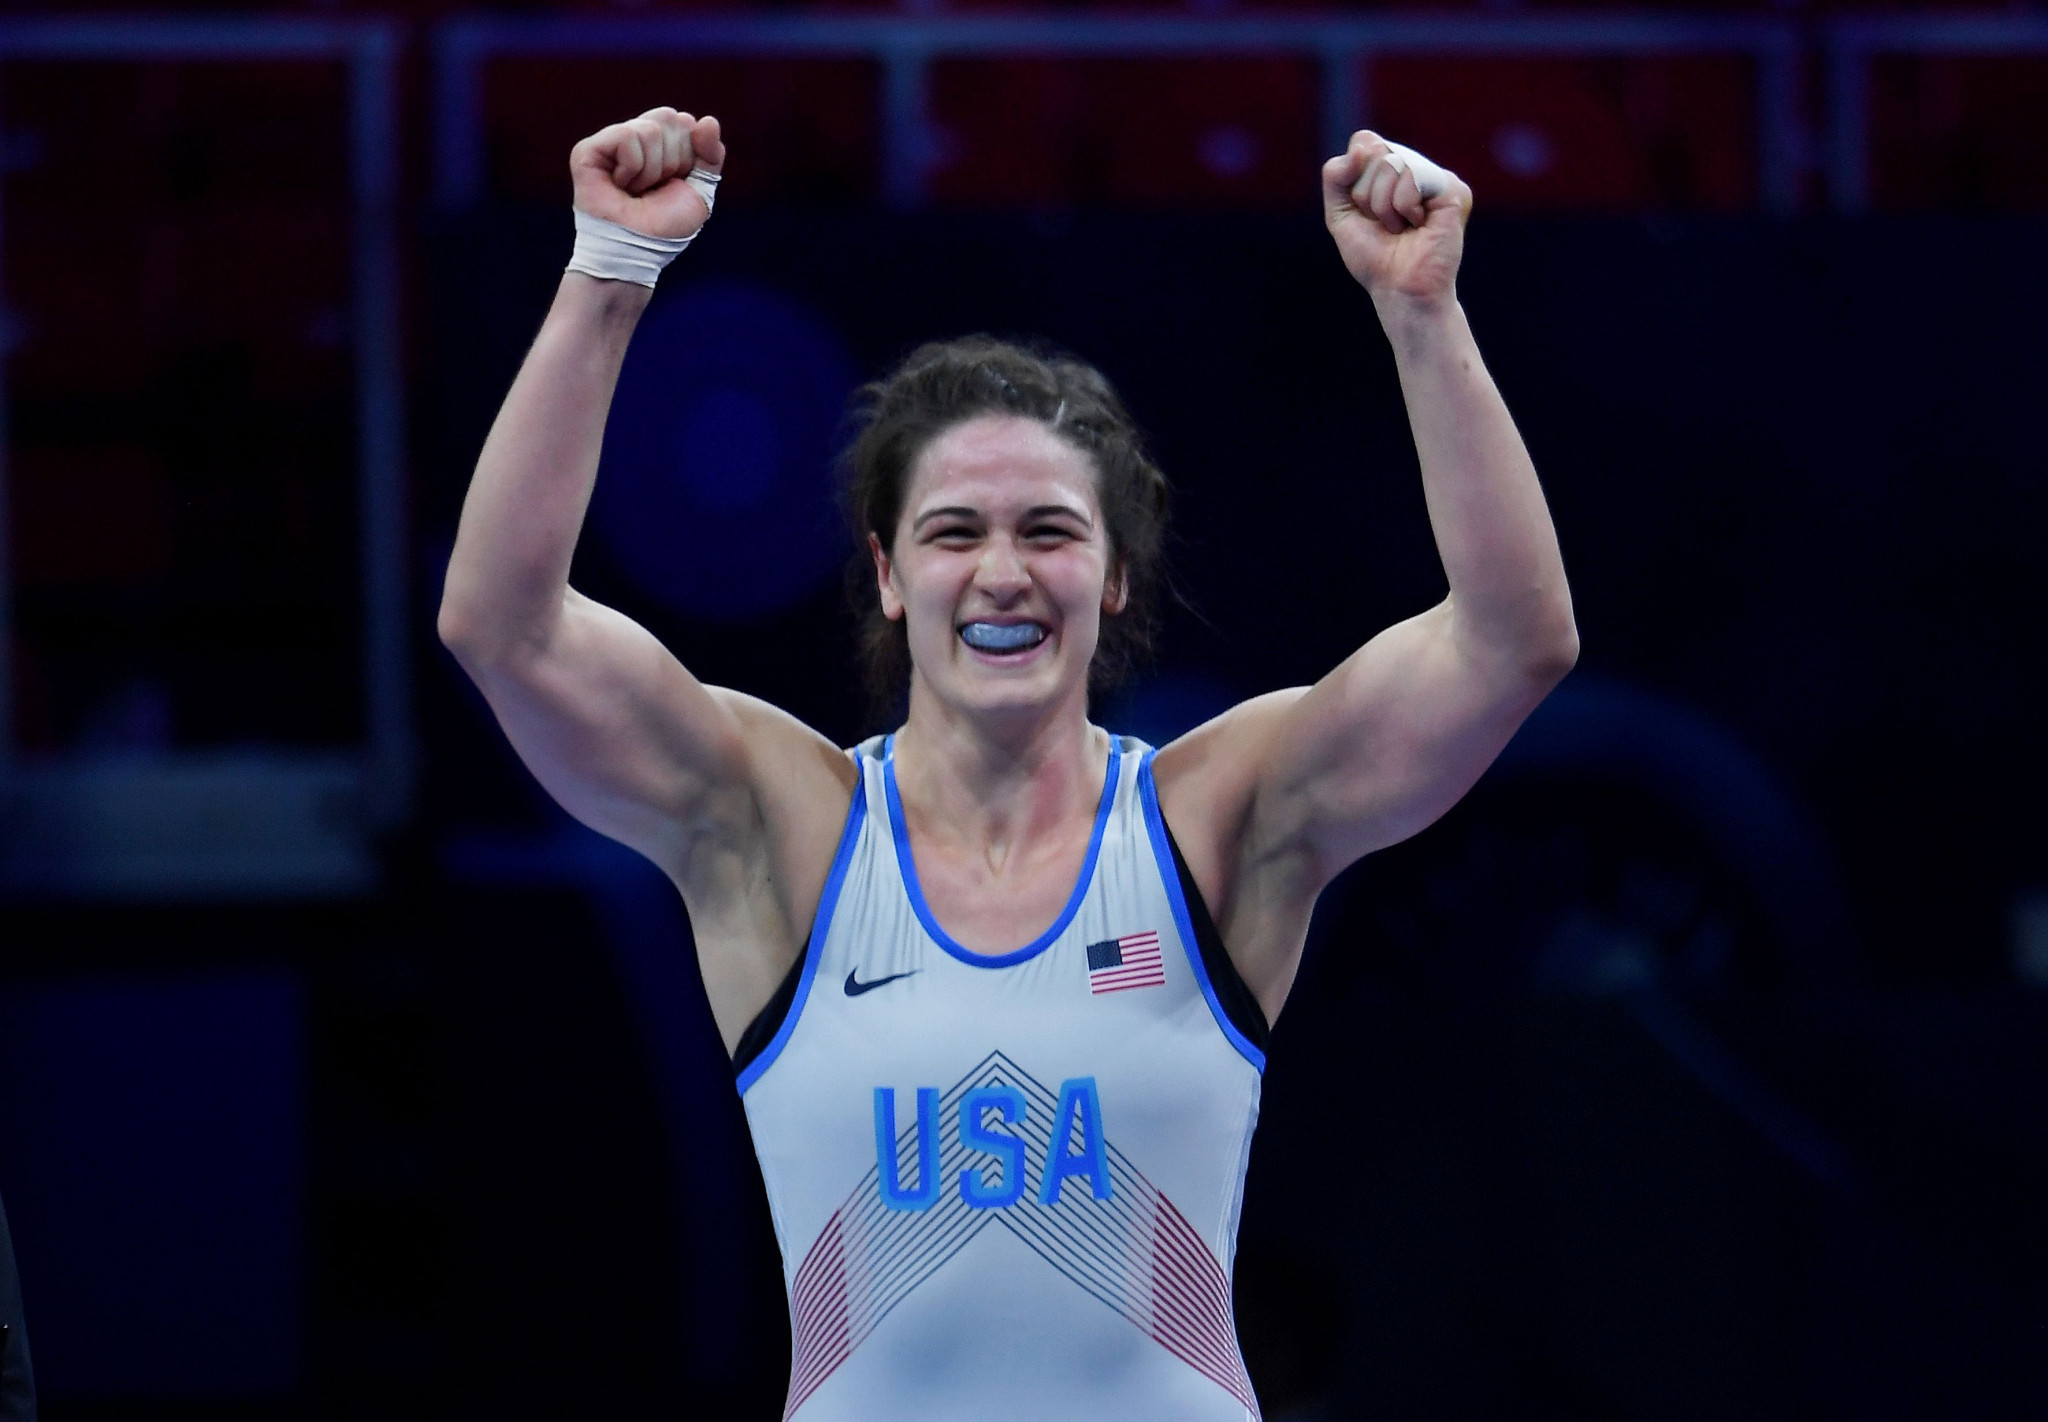 Gray among winners as women's competition concludes at Pan American Wrestling Championships